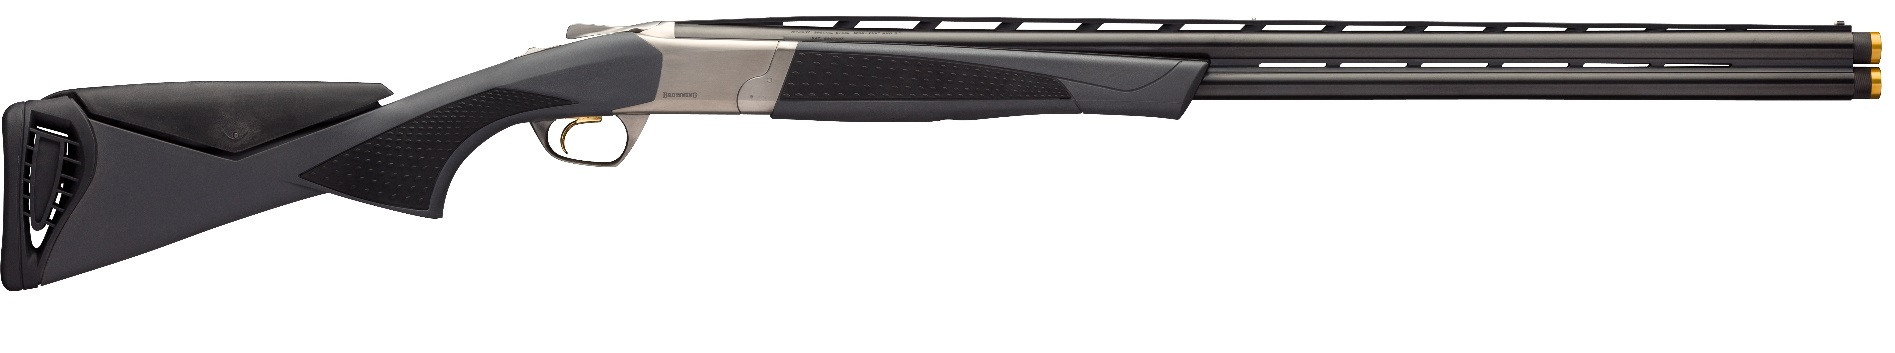 Browning Cynergy CX Composite 12 Gauge